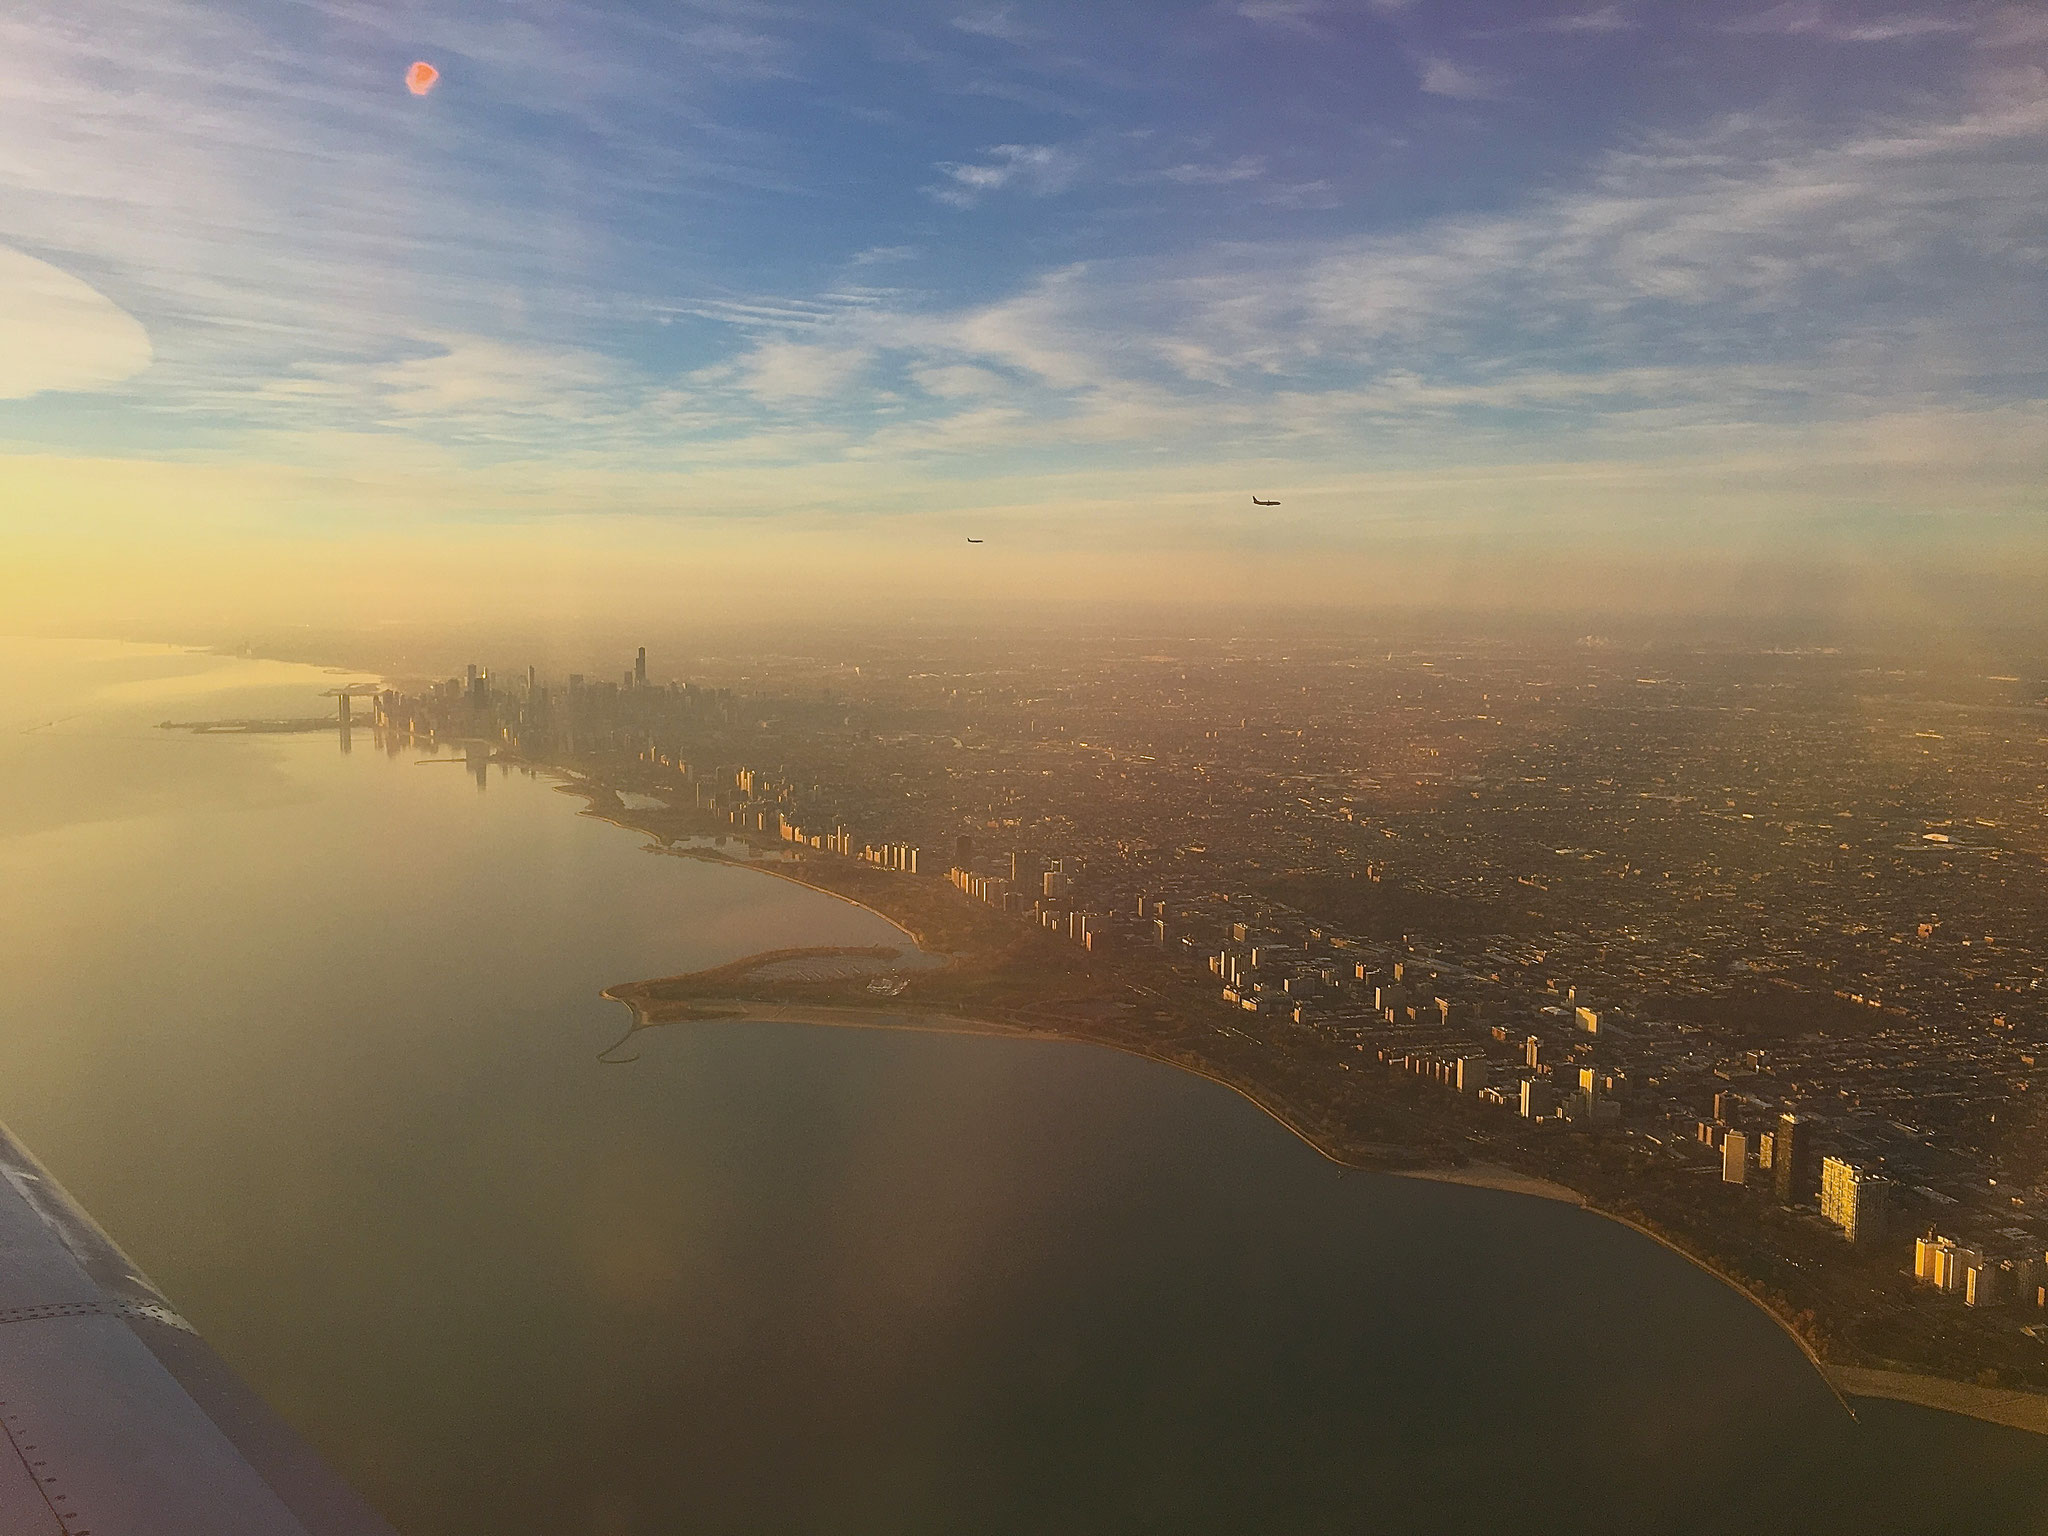 Chicago from the air, 11-27-17